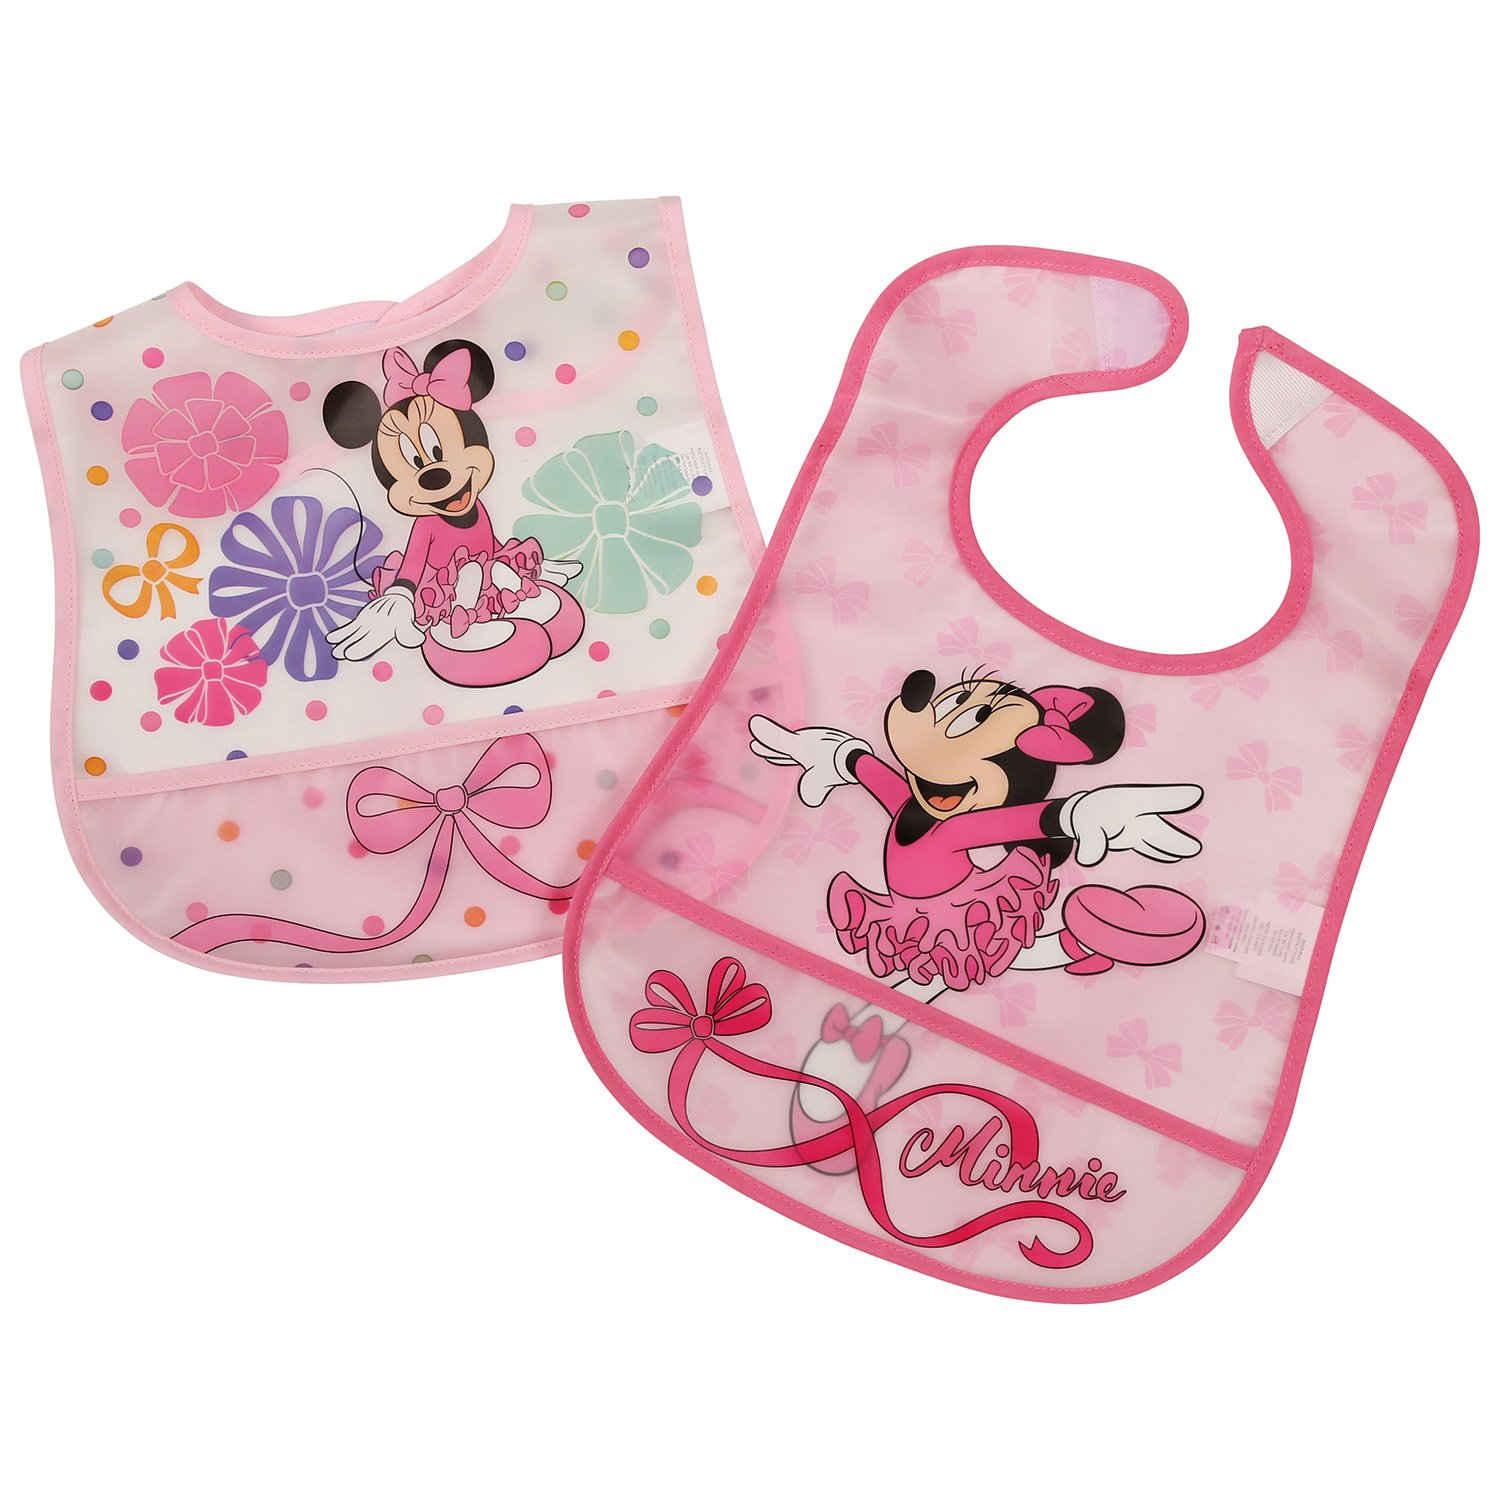 Disney Minnie Mouse 2Piece Printed Frosted Water Proof Peva Bib Crumb Catcher Pocket